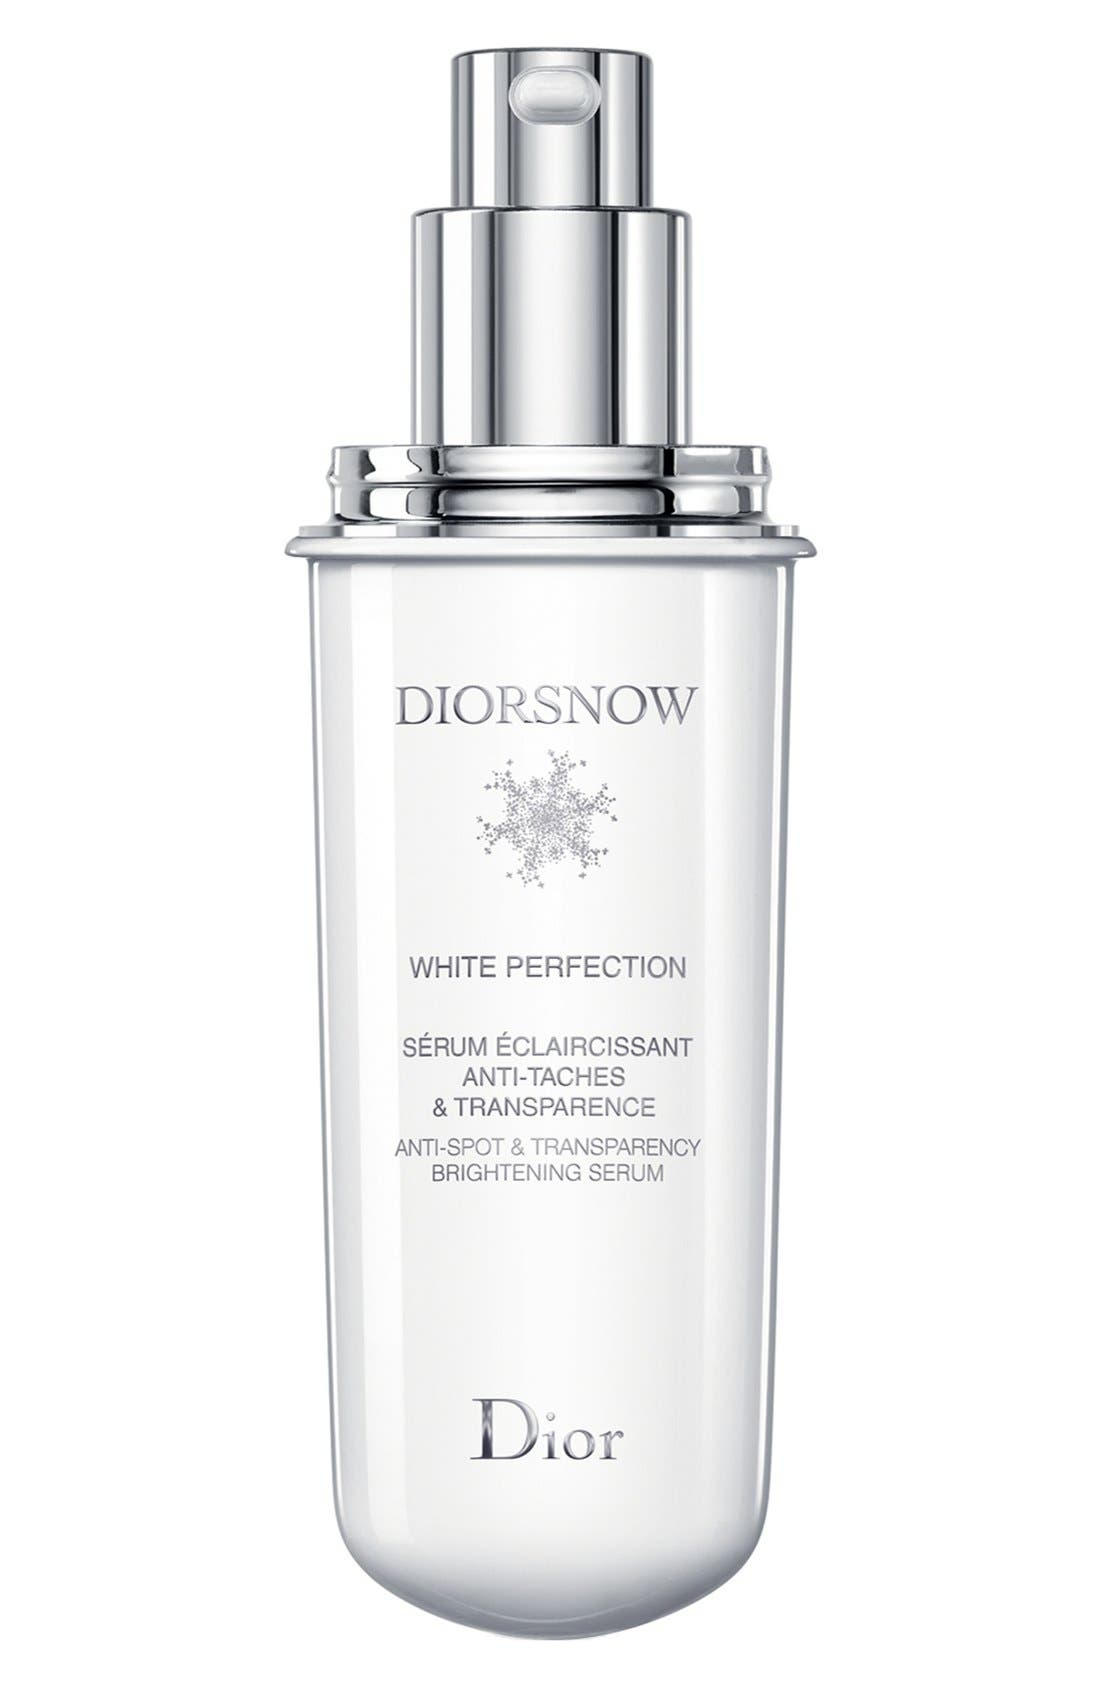 'Diorsnow' White Perfection Anti-Spot & Transparency Brightening Serum Refill,                             Main thumbnail 1, color,                             000